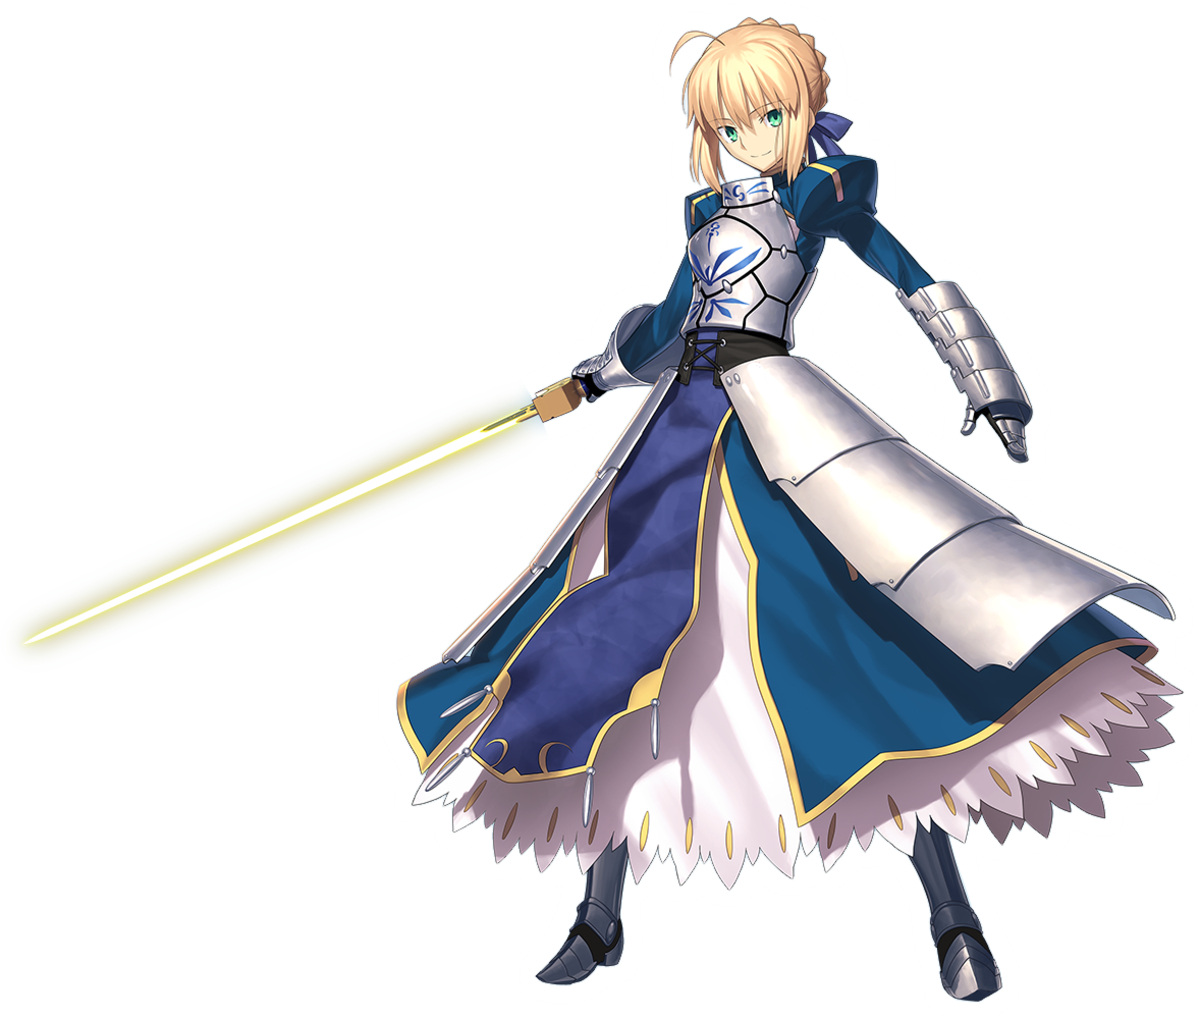 Saber in Fate/stay night